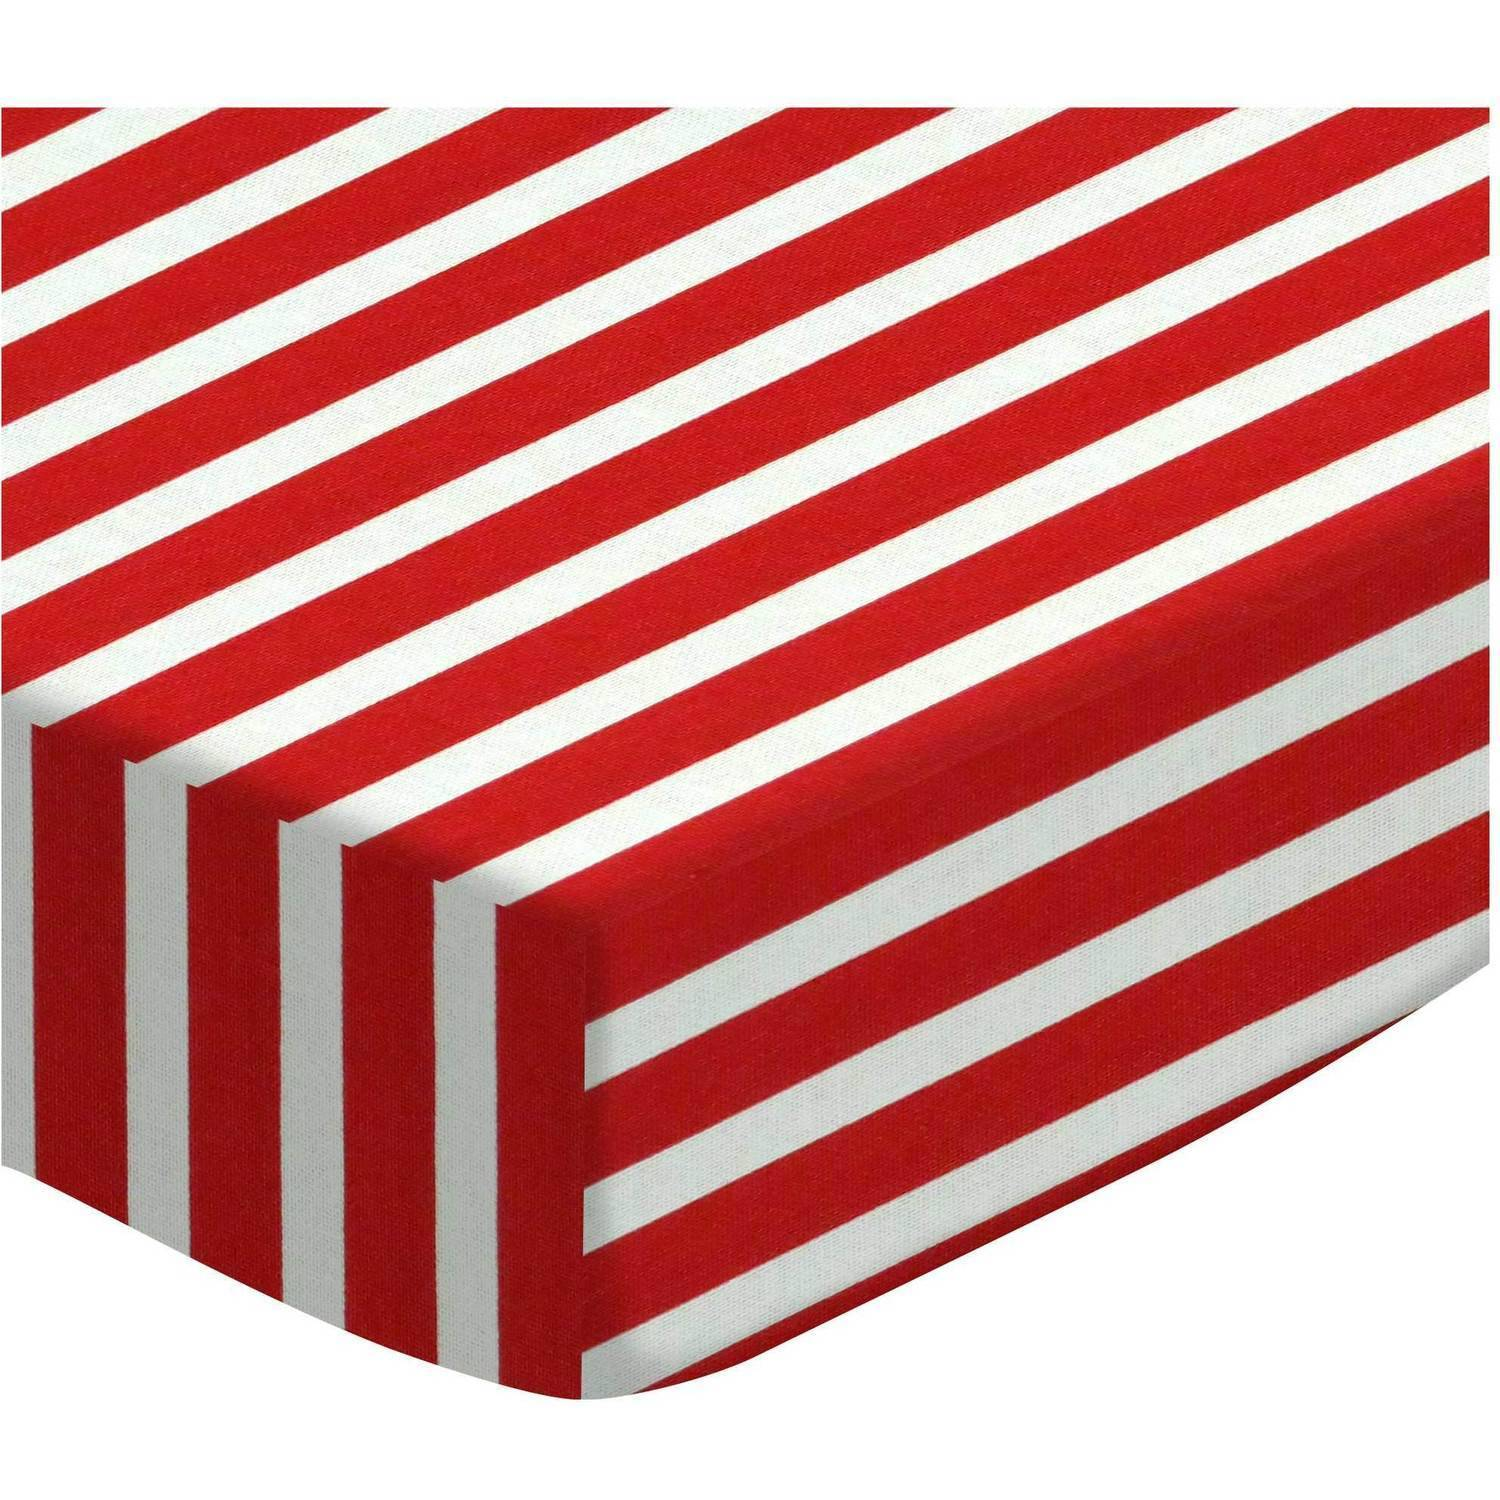 SheetWorld Fitted Portable / Mini Crib Sheet - Primary Red Stripe Woven